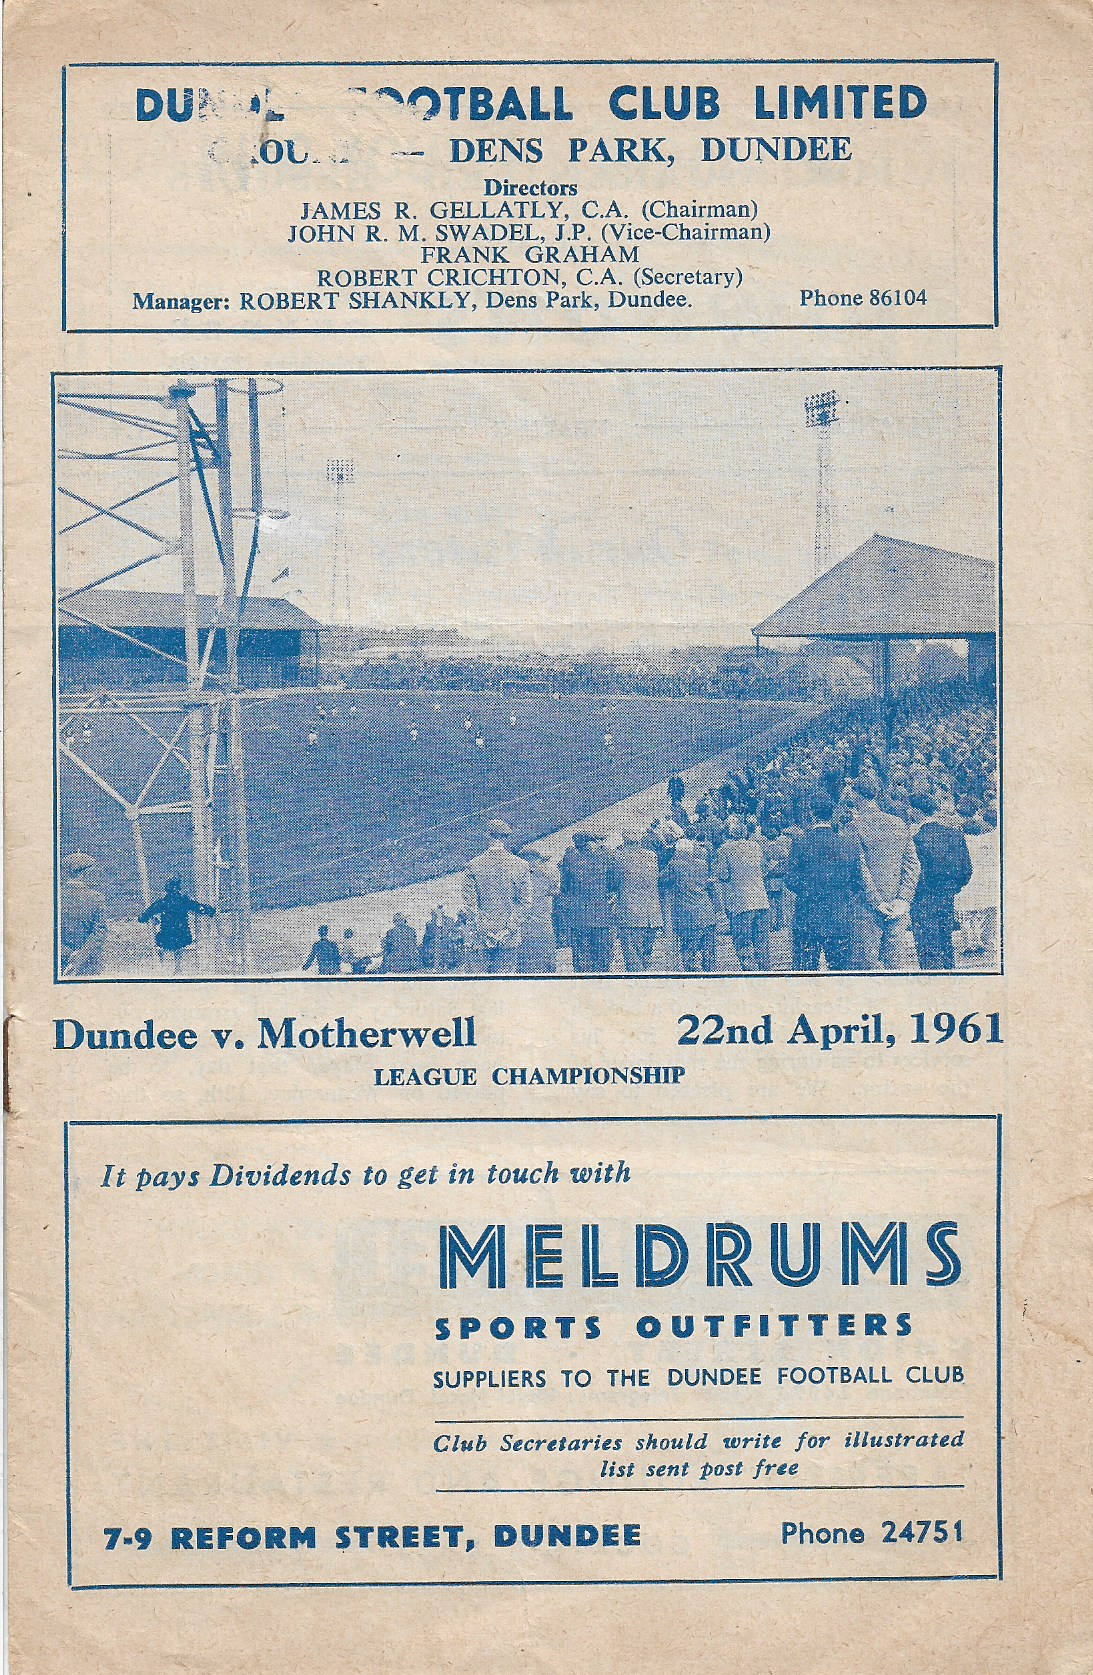 Dundee Programme 22nd April 1961